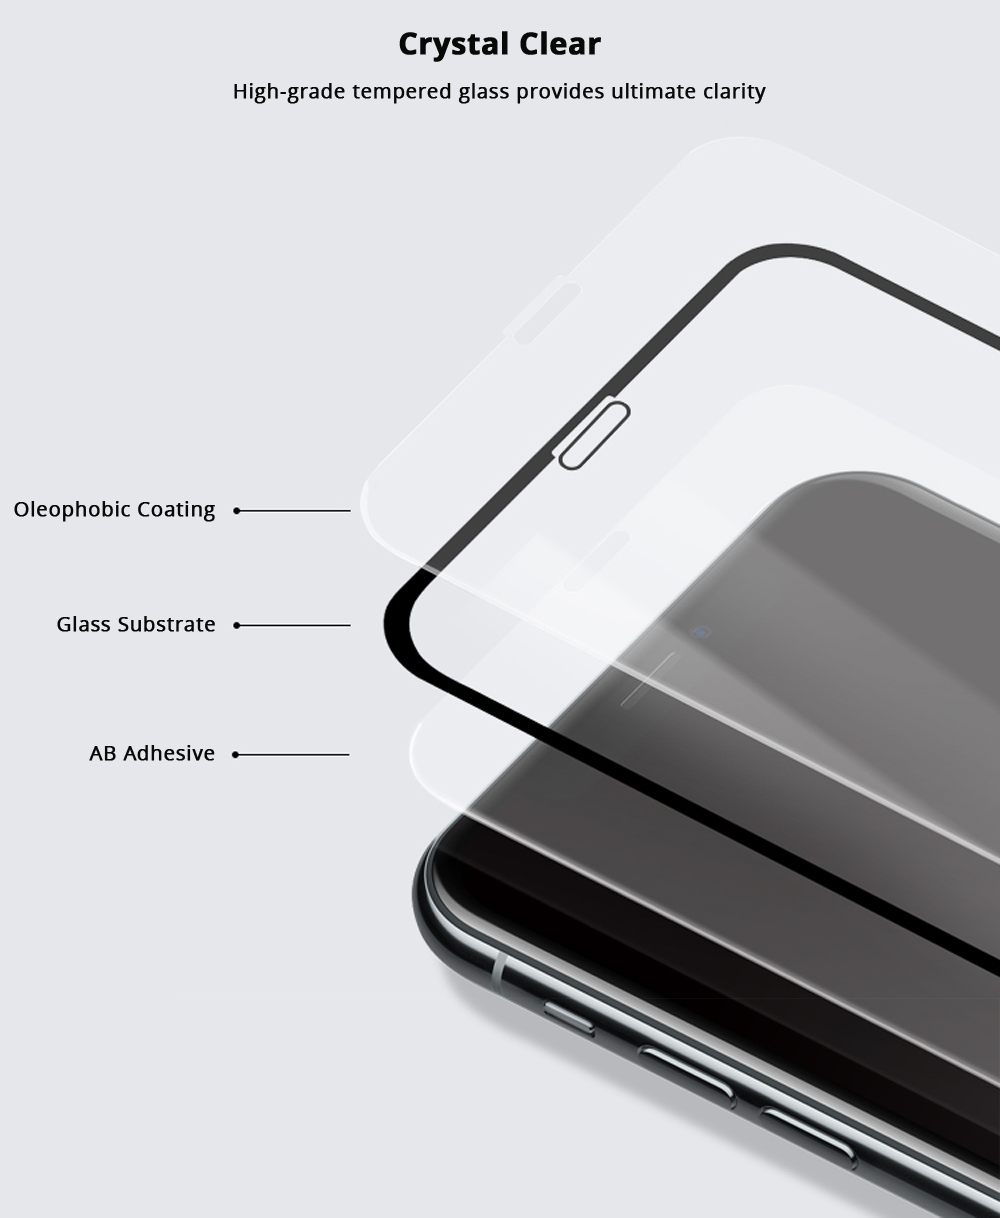 Impact Shield Anti-glare Precise-align Perfect Fit Screen Protector for iPhone X, iPhone 8/8 Plus, iPhone 7/7 Plus Protective Screen Skin Protector 7